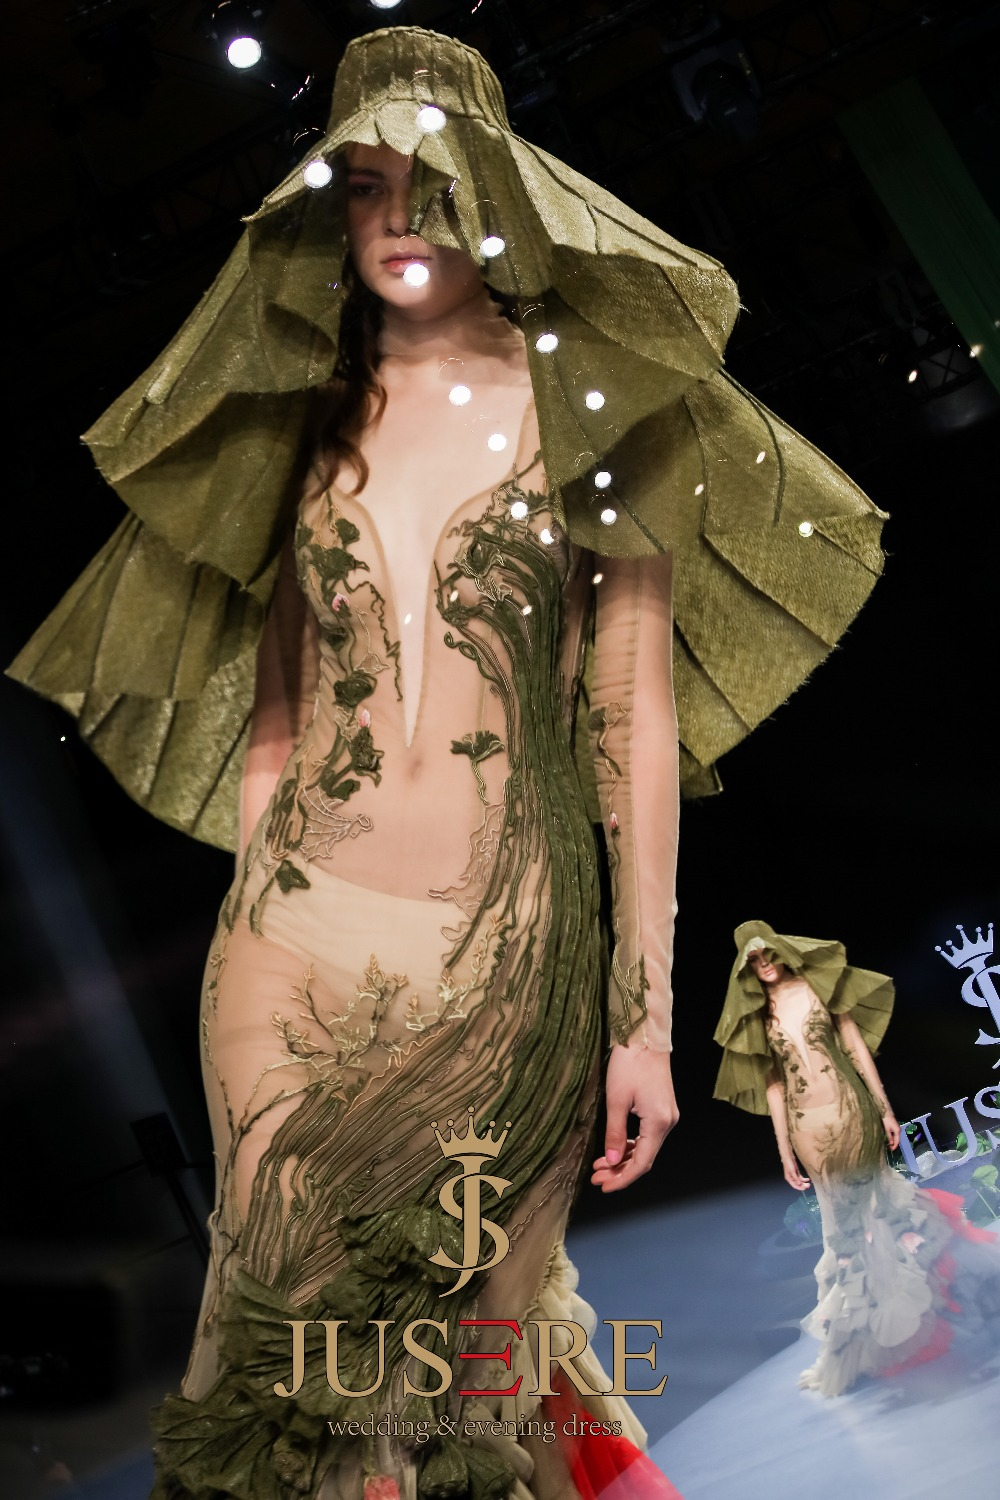 Image 5 - JUSERE 2019 SS FASHION SHOW Green Mermaid Prom Dress Lace Appliques Embroidery Flower Long Prom Dresses Dress robe de soireeProm Dresses   -